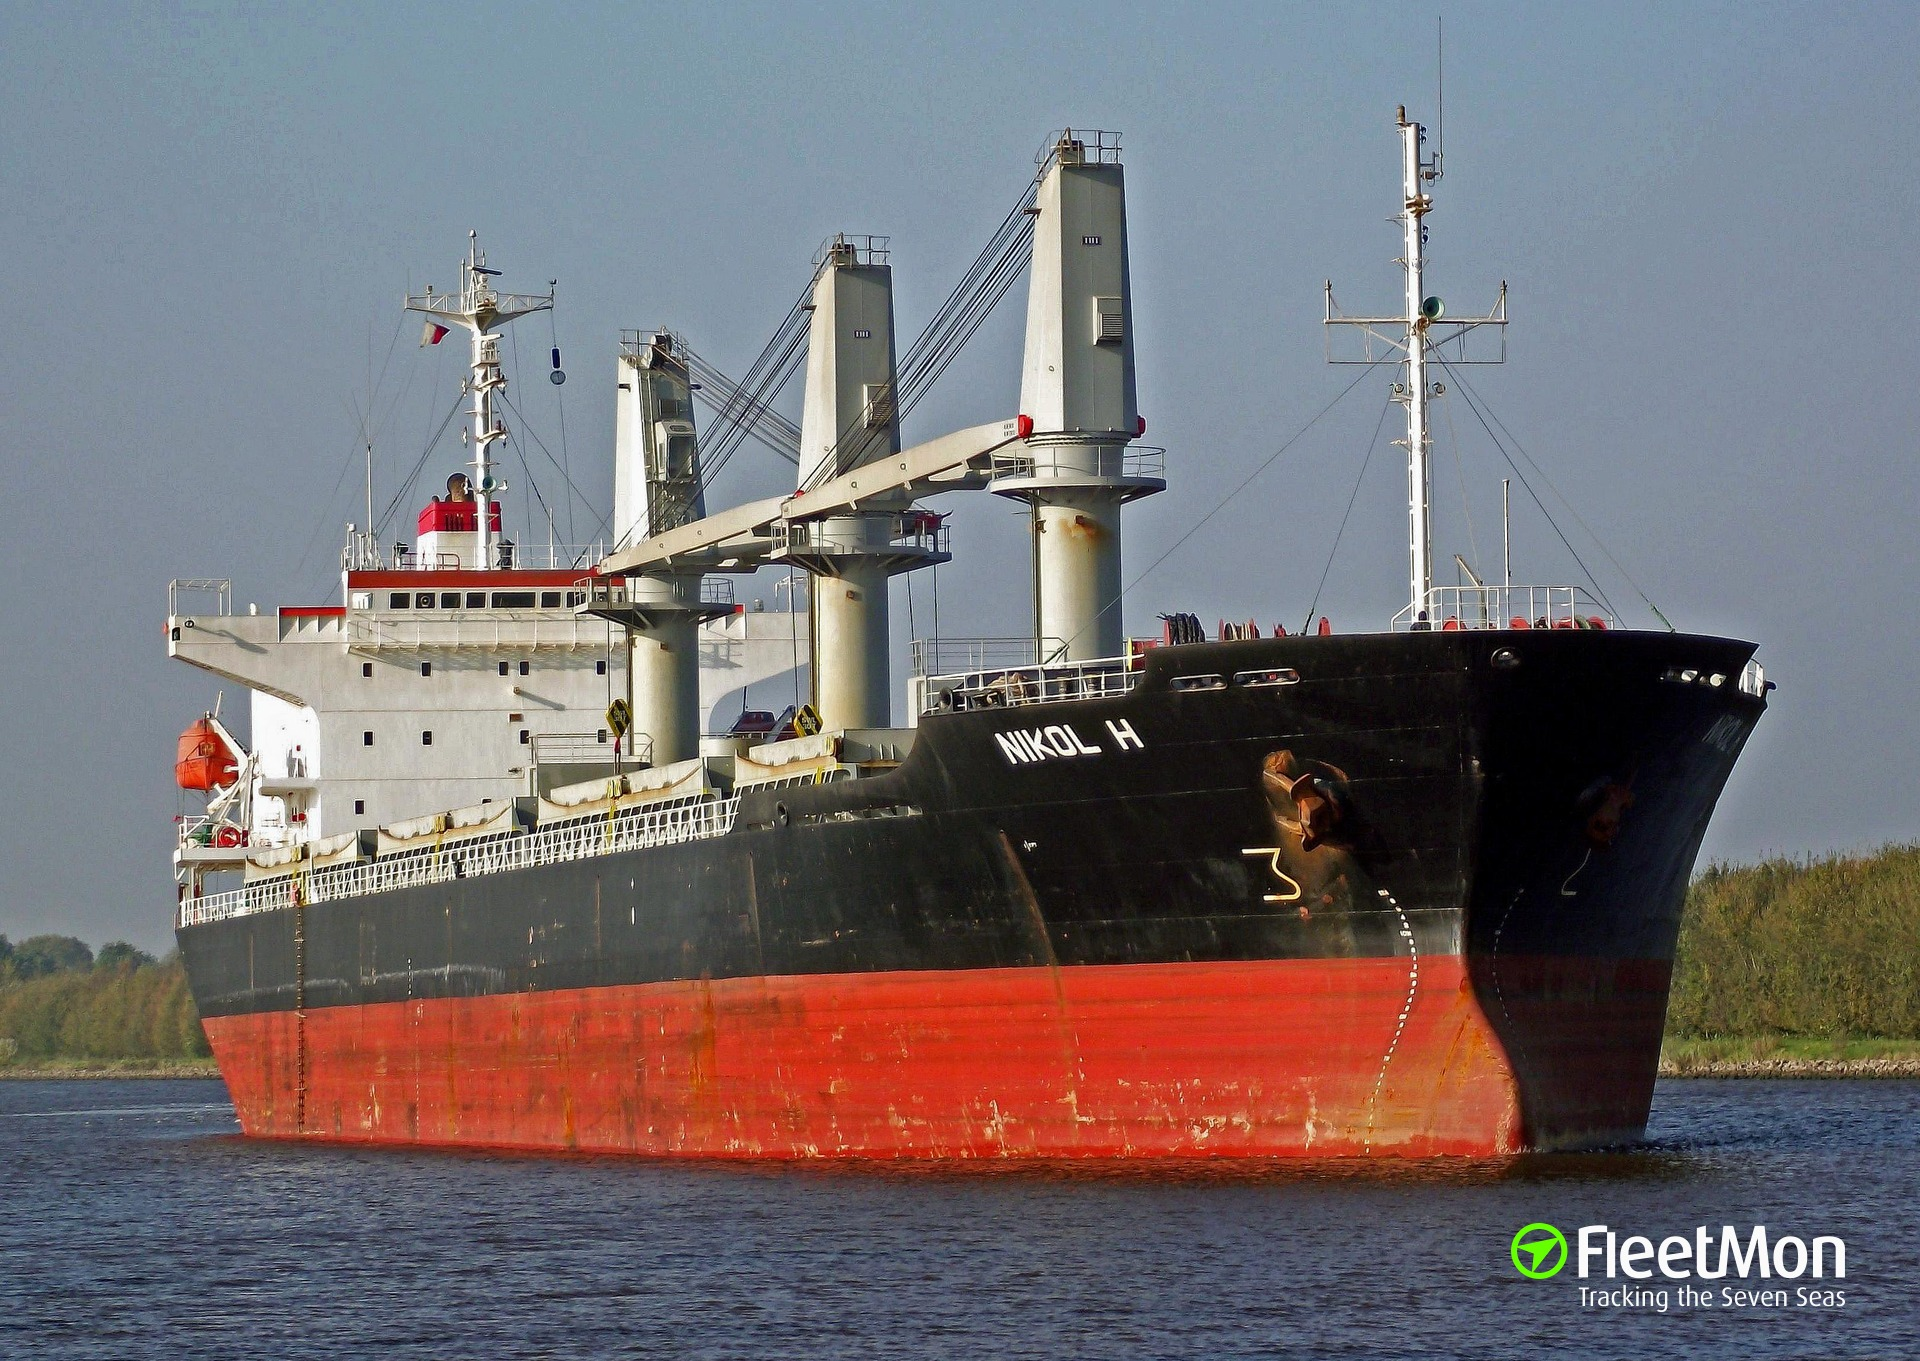 Freighter Nikol H stuck in Philadelphia since April, 20 crew locked on board